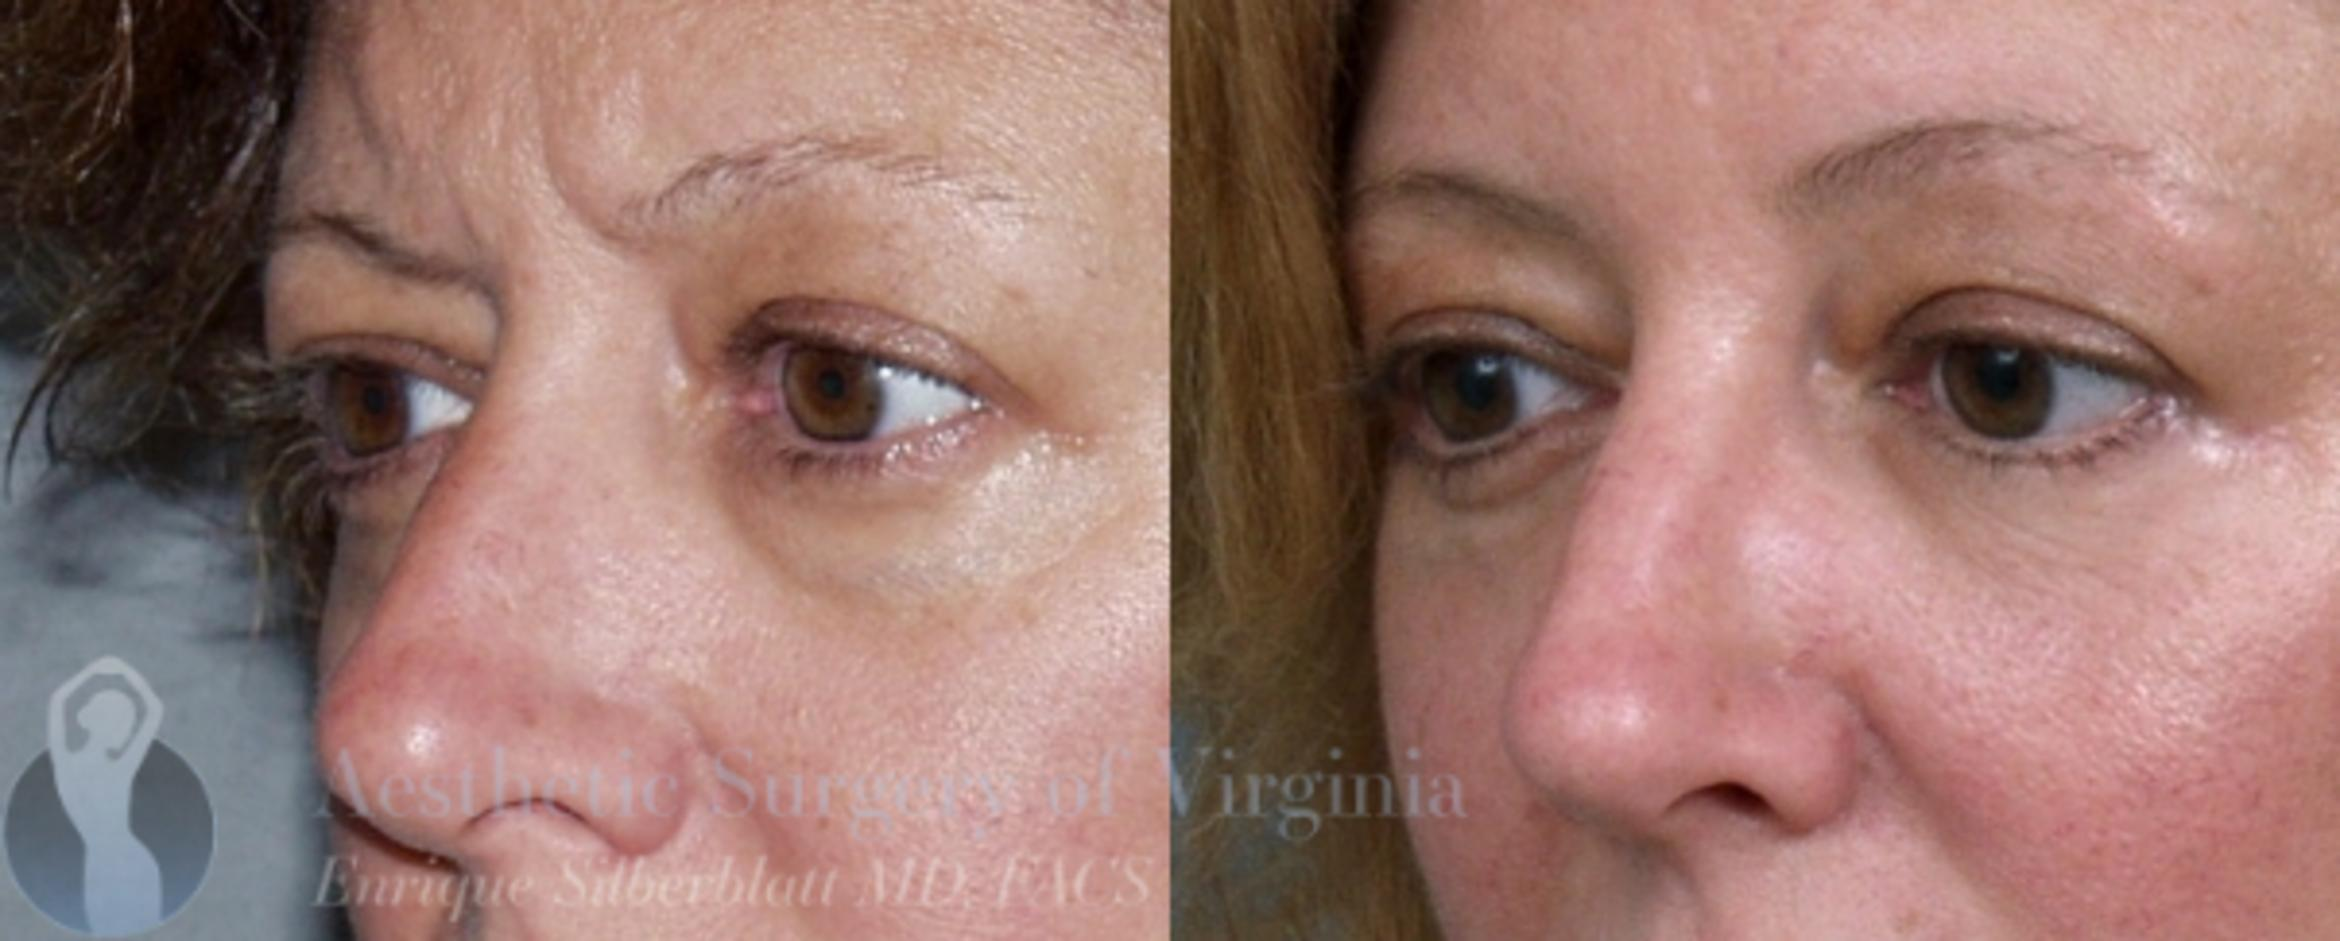 Eyelid Surgery Case 42 Before & After View #2 | Roanoke, VA | Aesthetic Surgery of Virginia: Enrique Silberblatt, MD